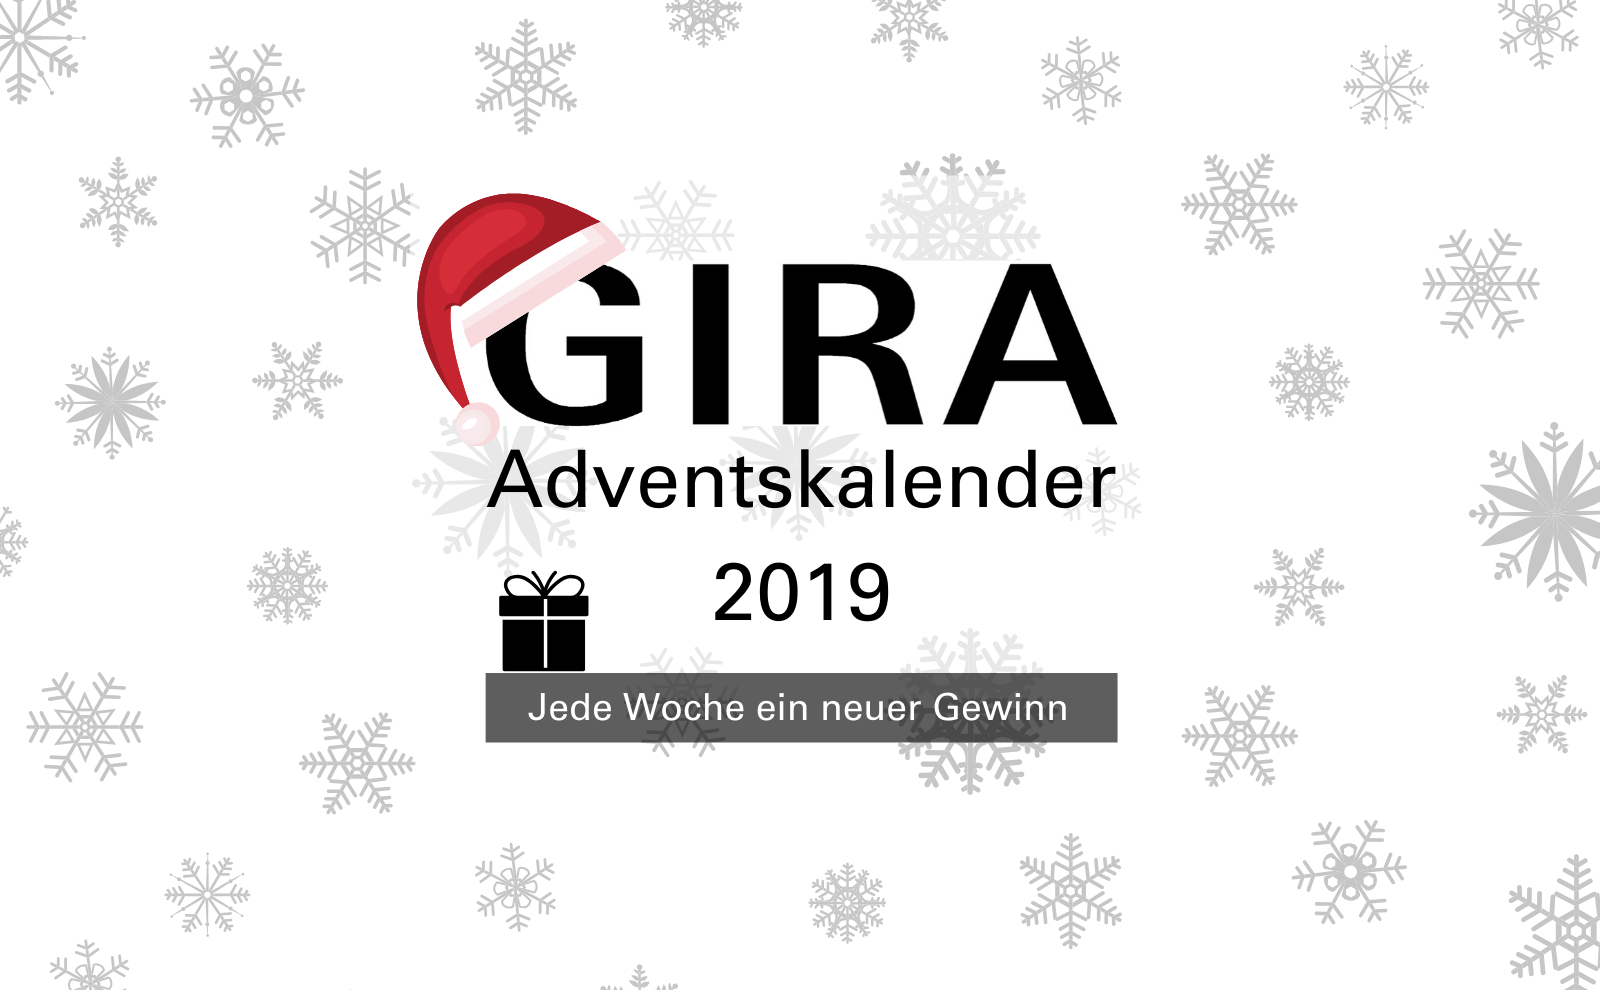 Adventskalender_2019_Webseite_19892_1574853040.png